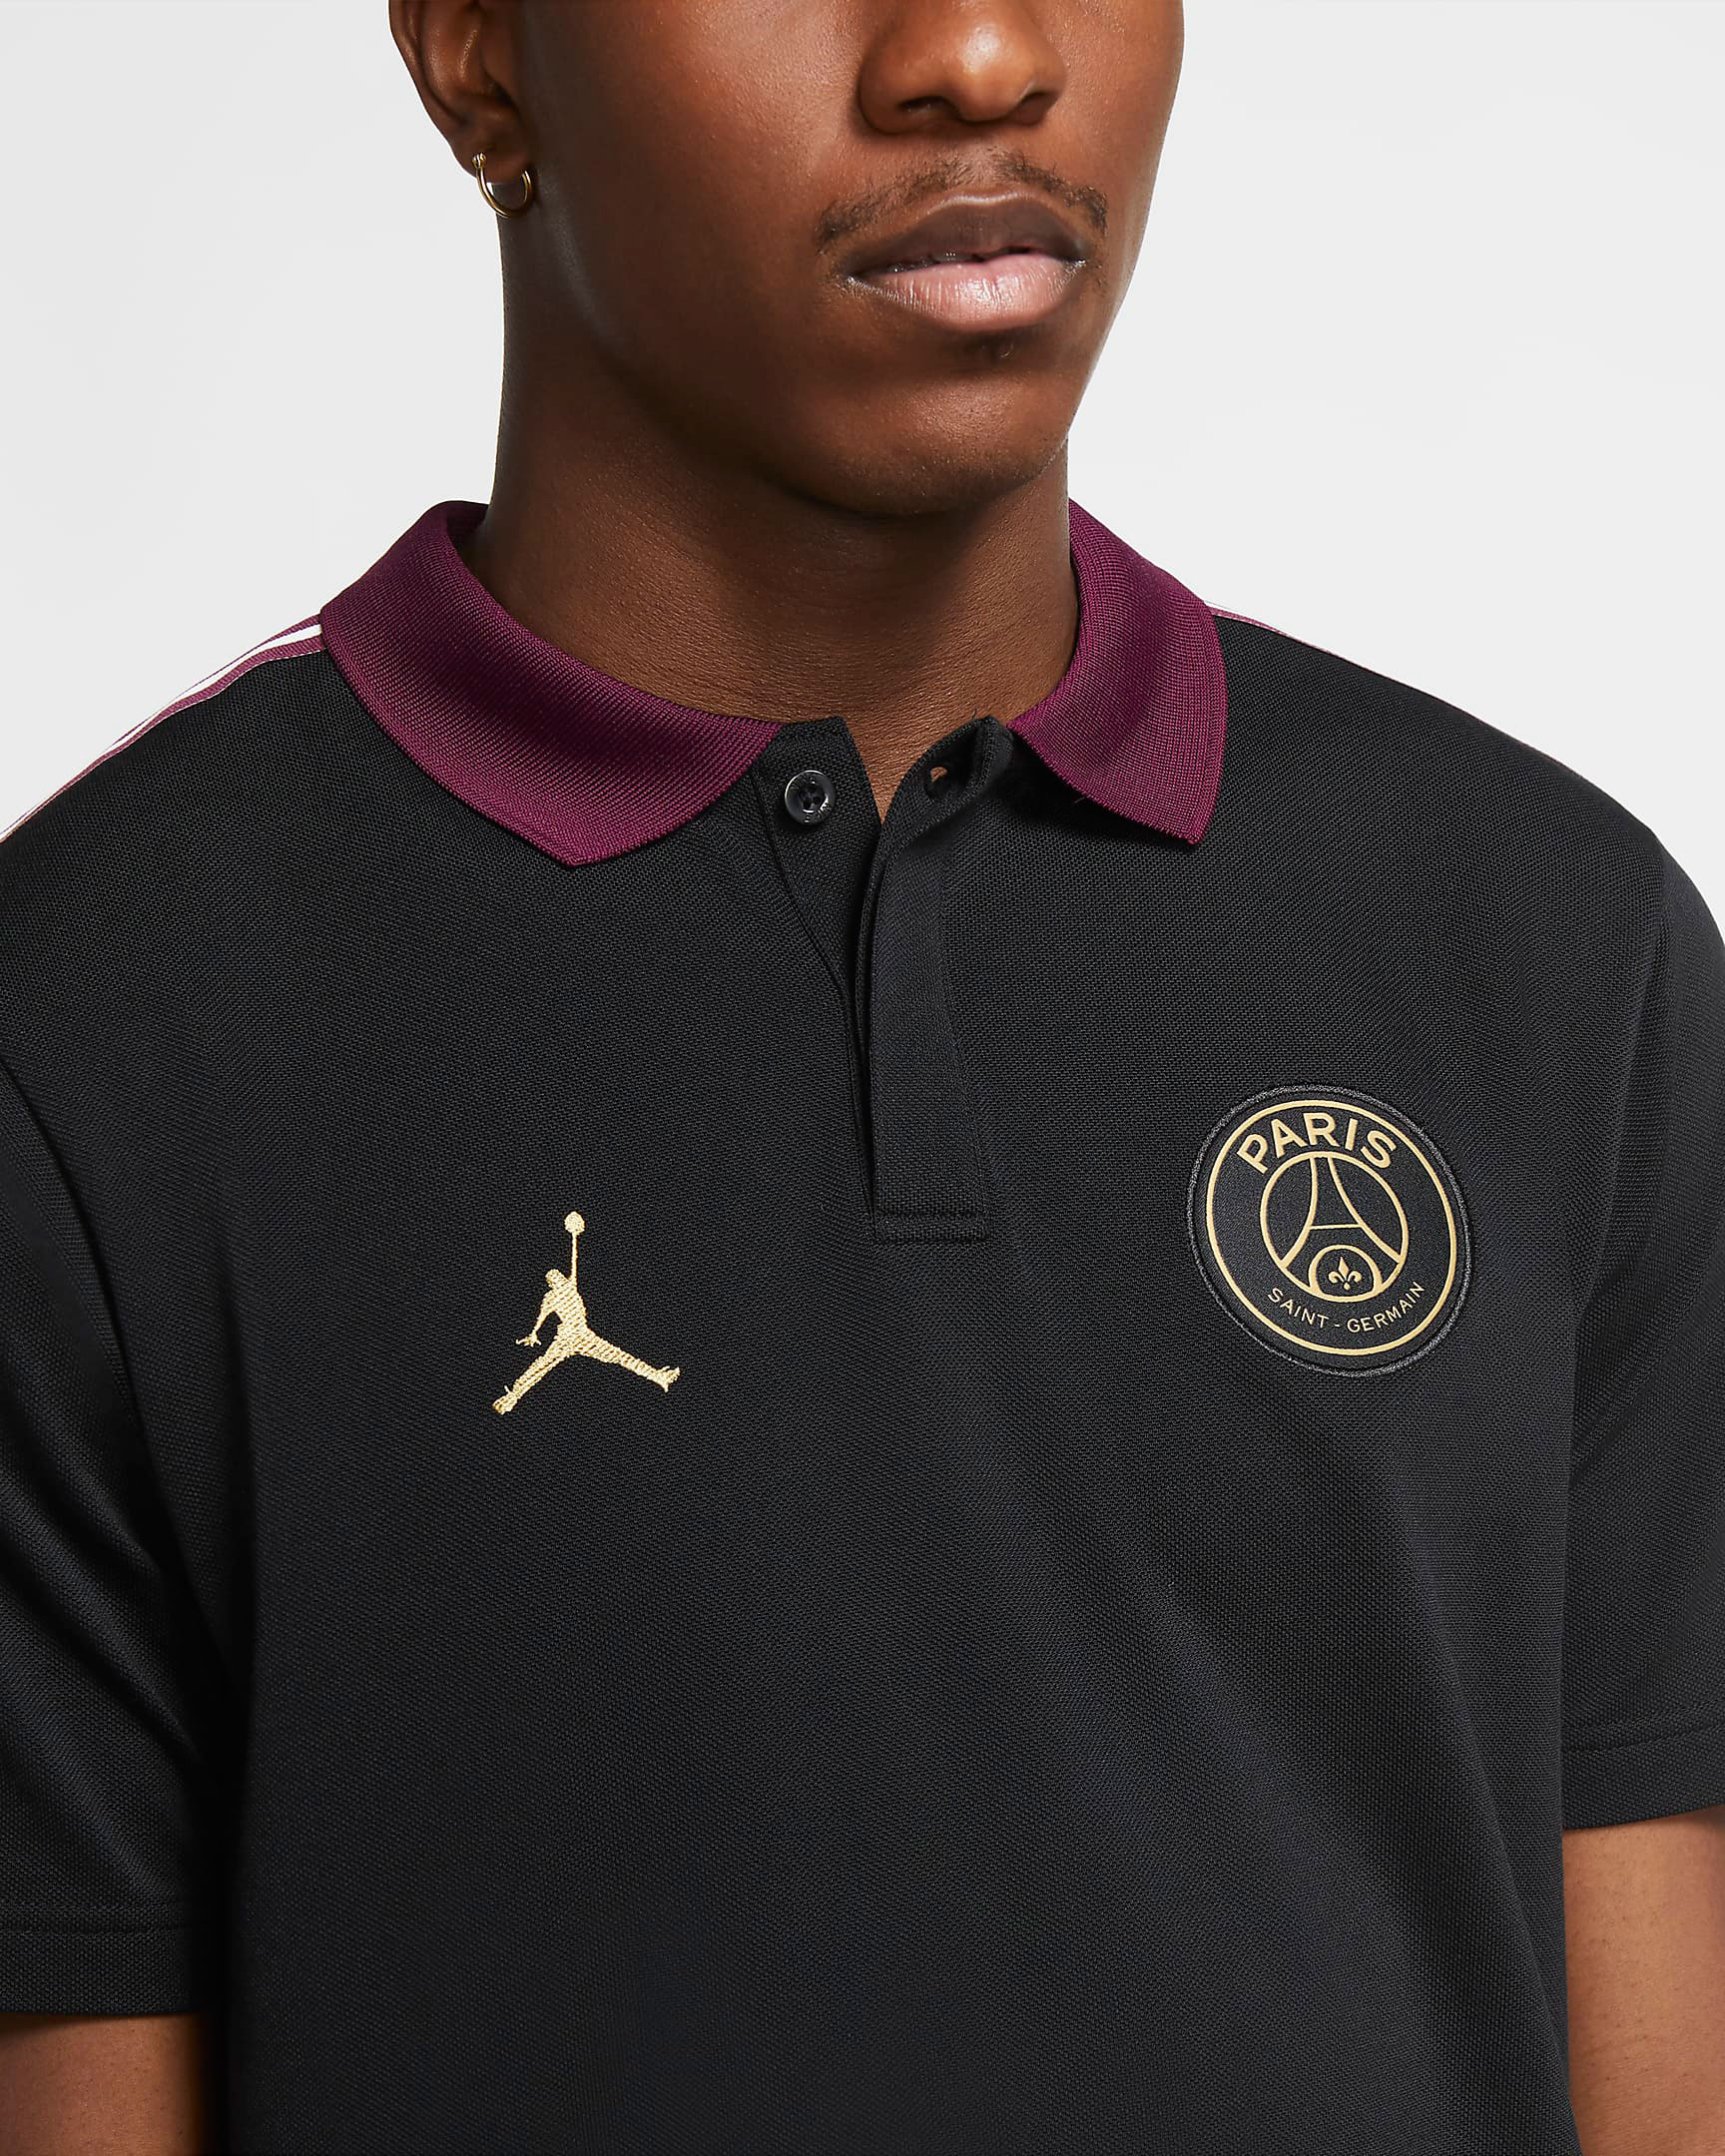 jordan-psg-paris-saint-germain-polo-shirt-1